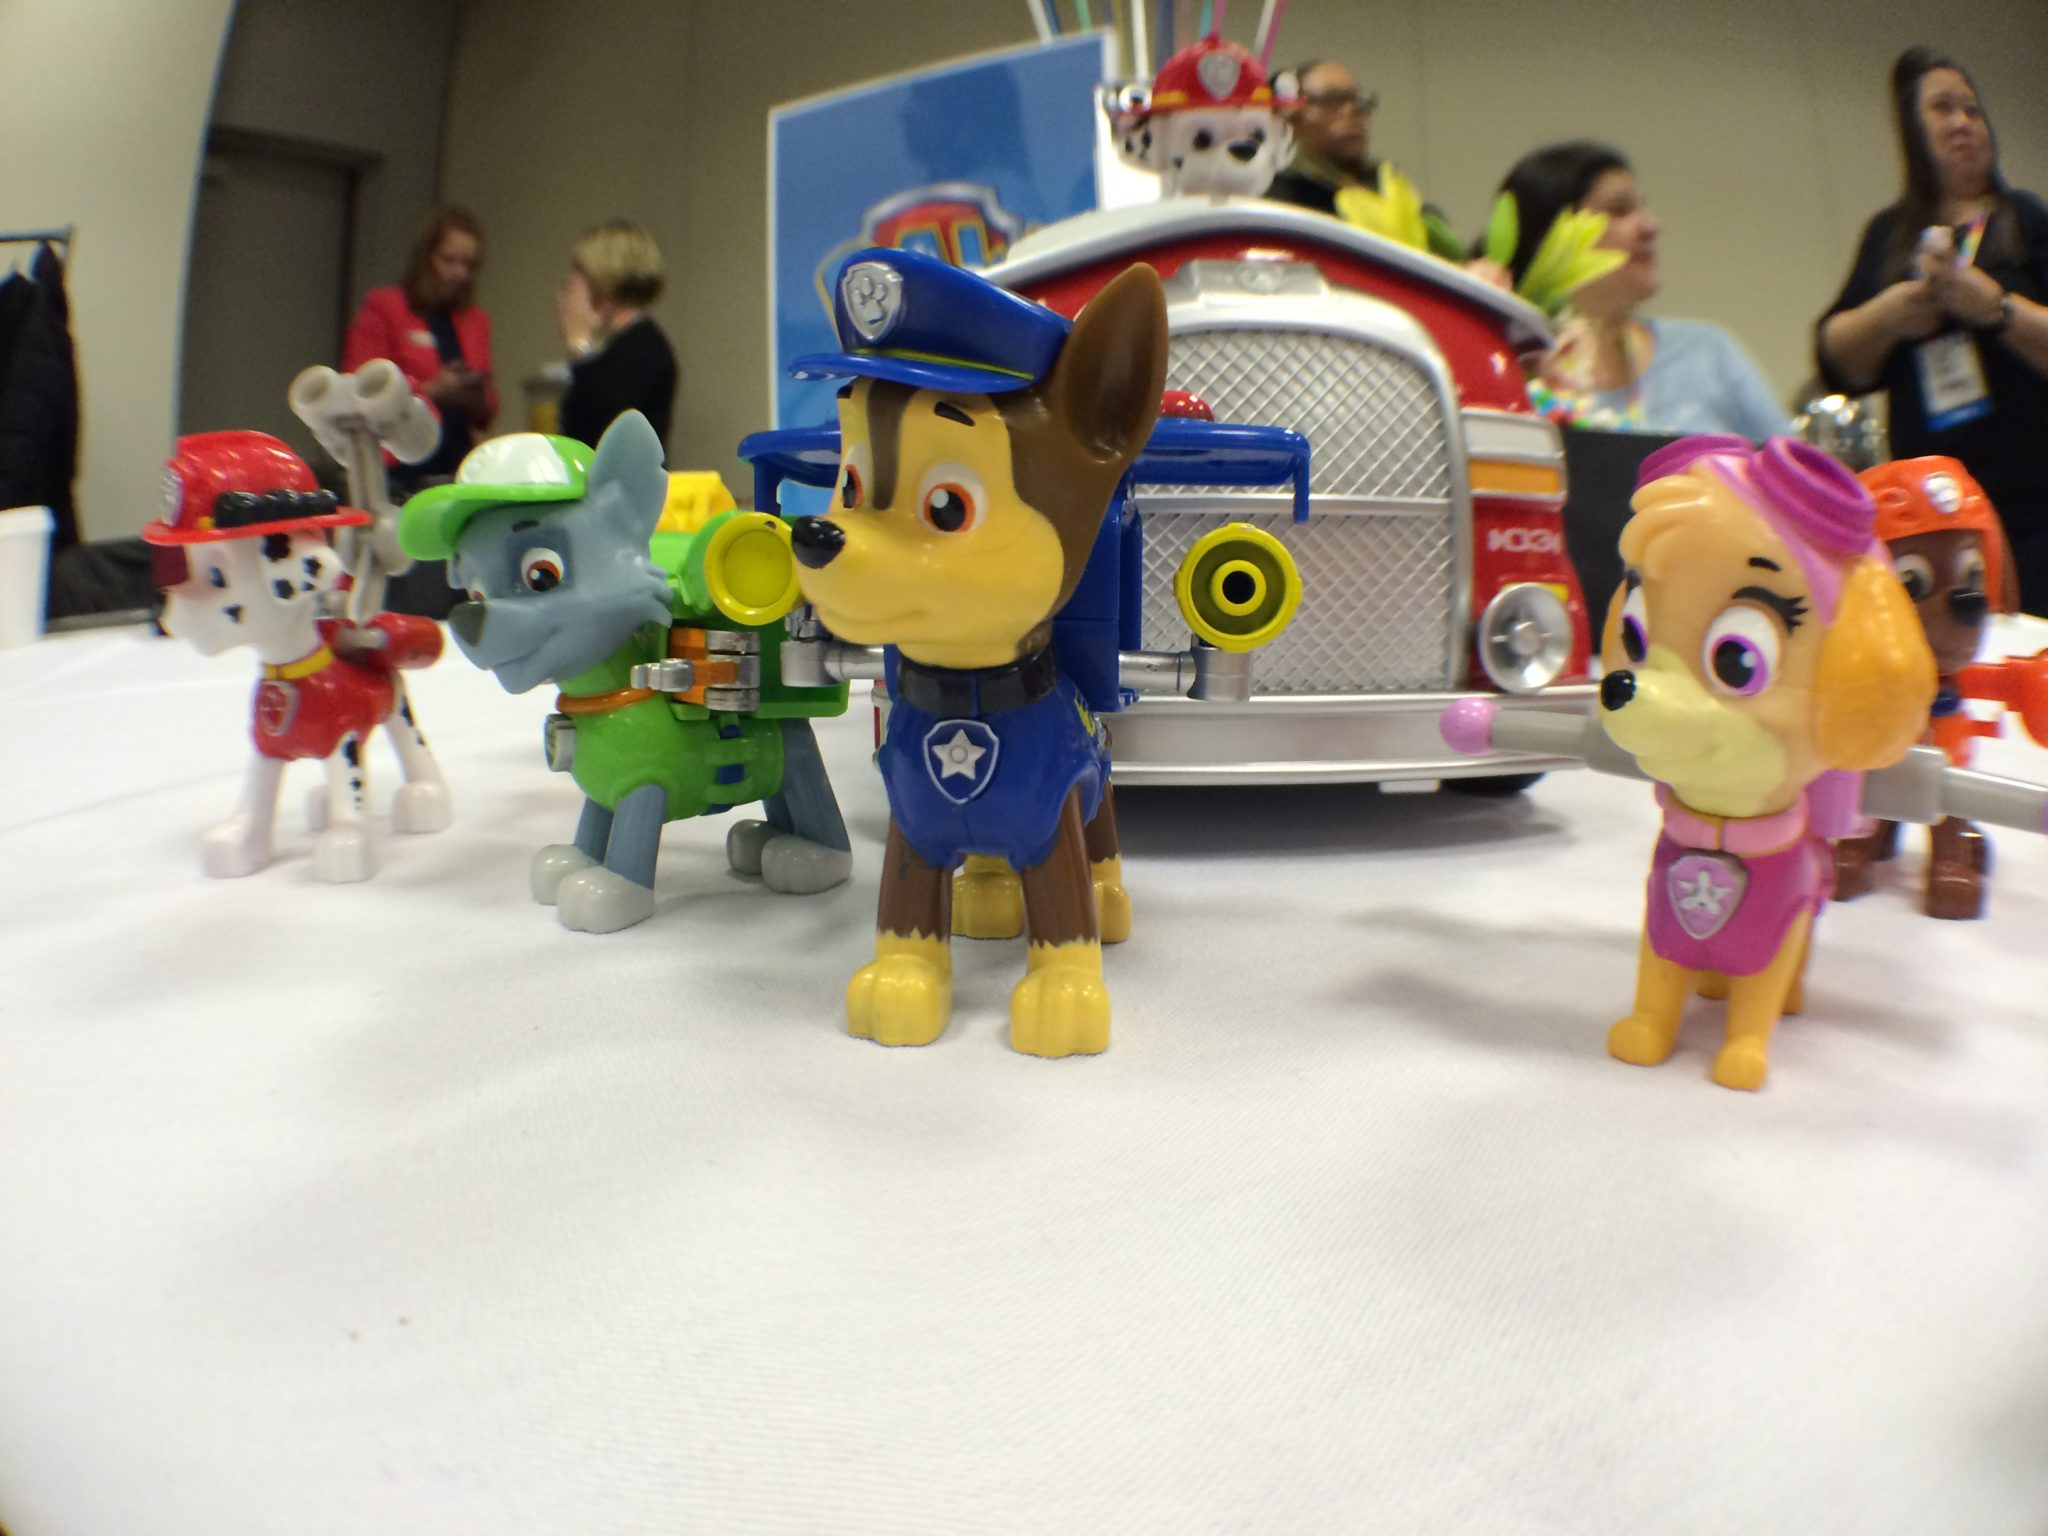 Paw Patrol Toy For Everyone : Paw patrol toys toyqueen